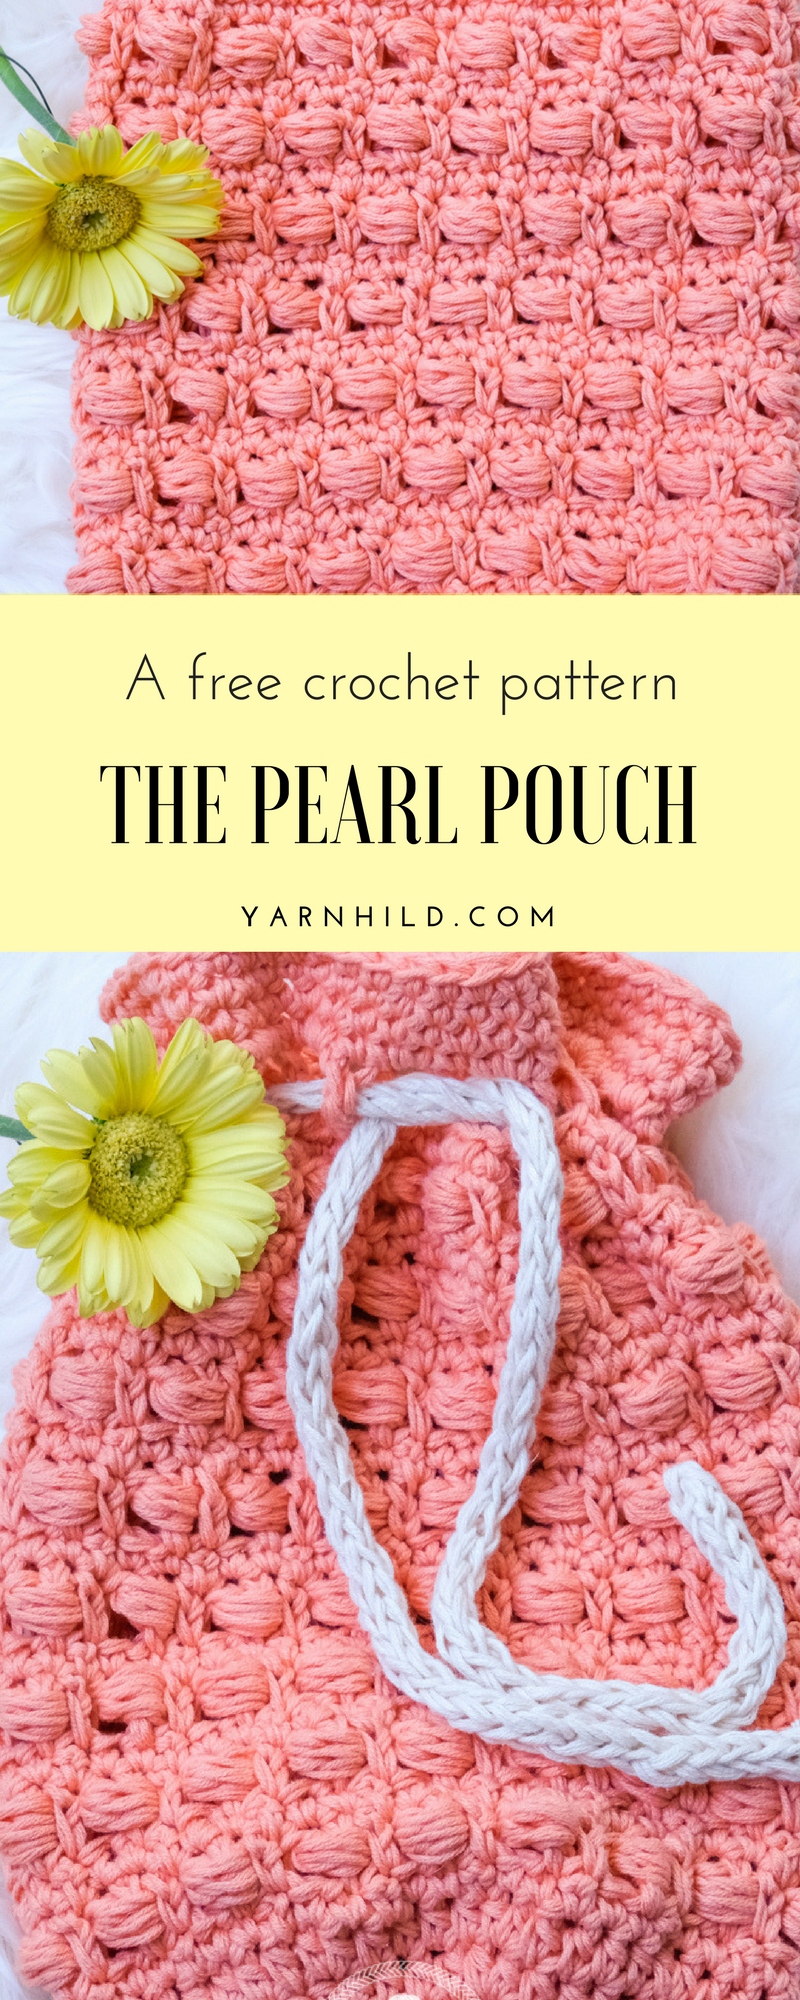 Crochet bag pattern - learn how to crochet a pouch, with video tutorial.